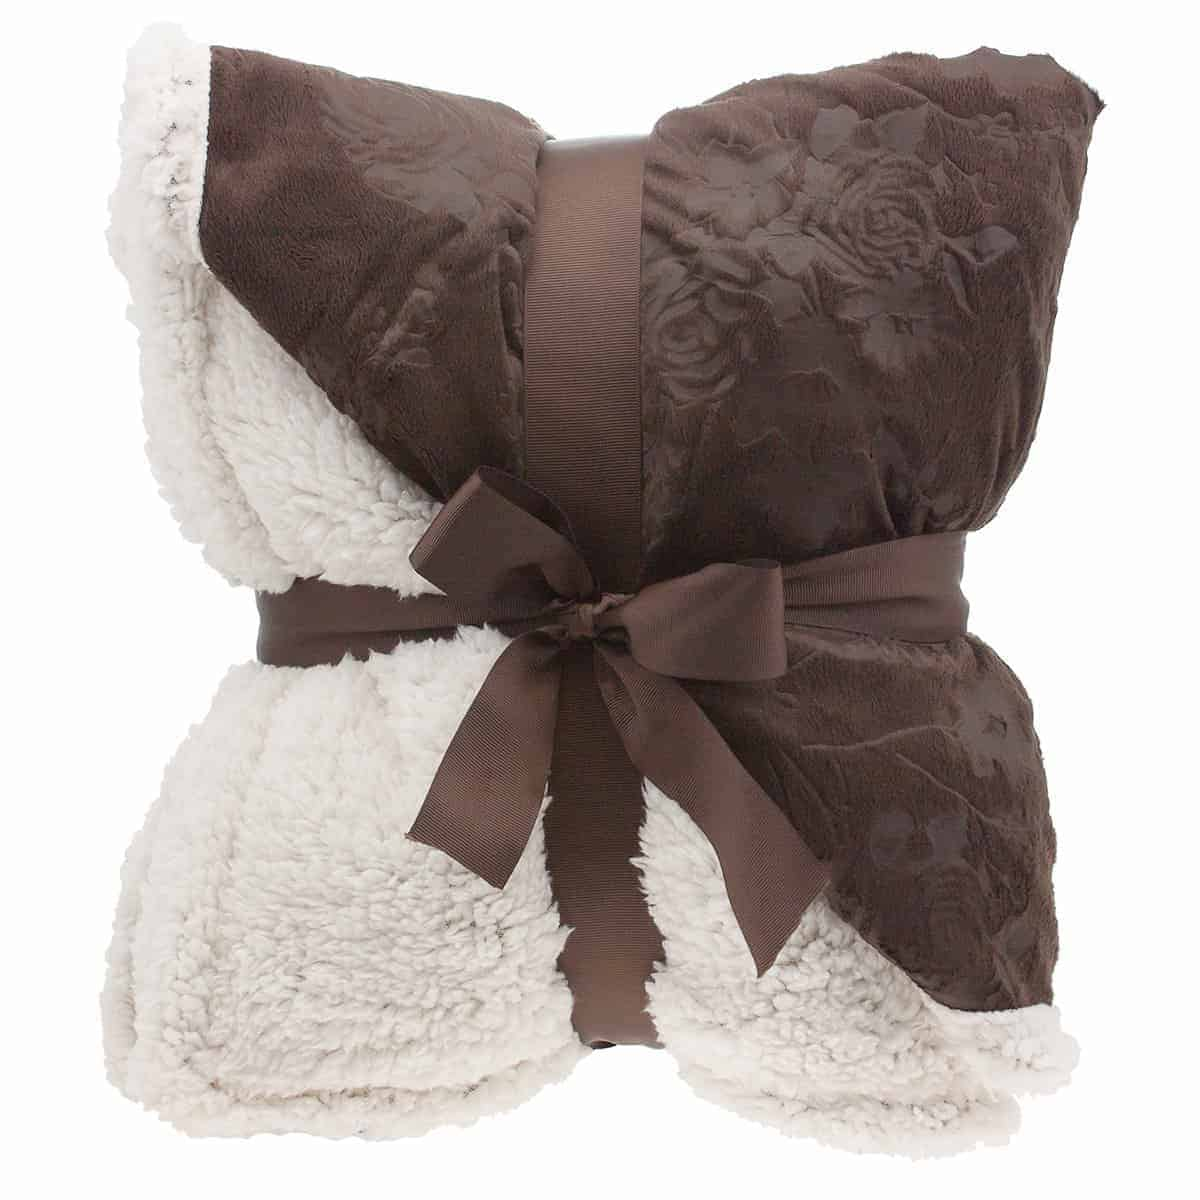 chemo care package fuzzy throw: When your loved one is fighting breast cancer, it's hard to know what to do to help. This chemo care package is both practical and shows that you care.